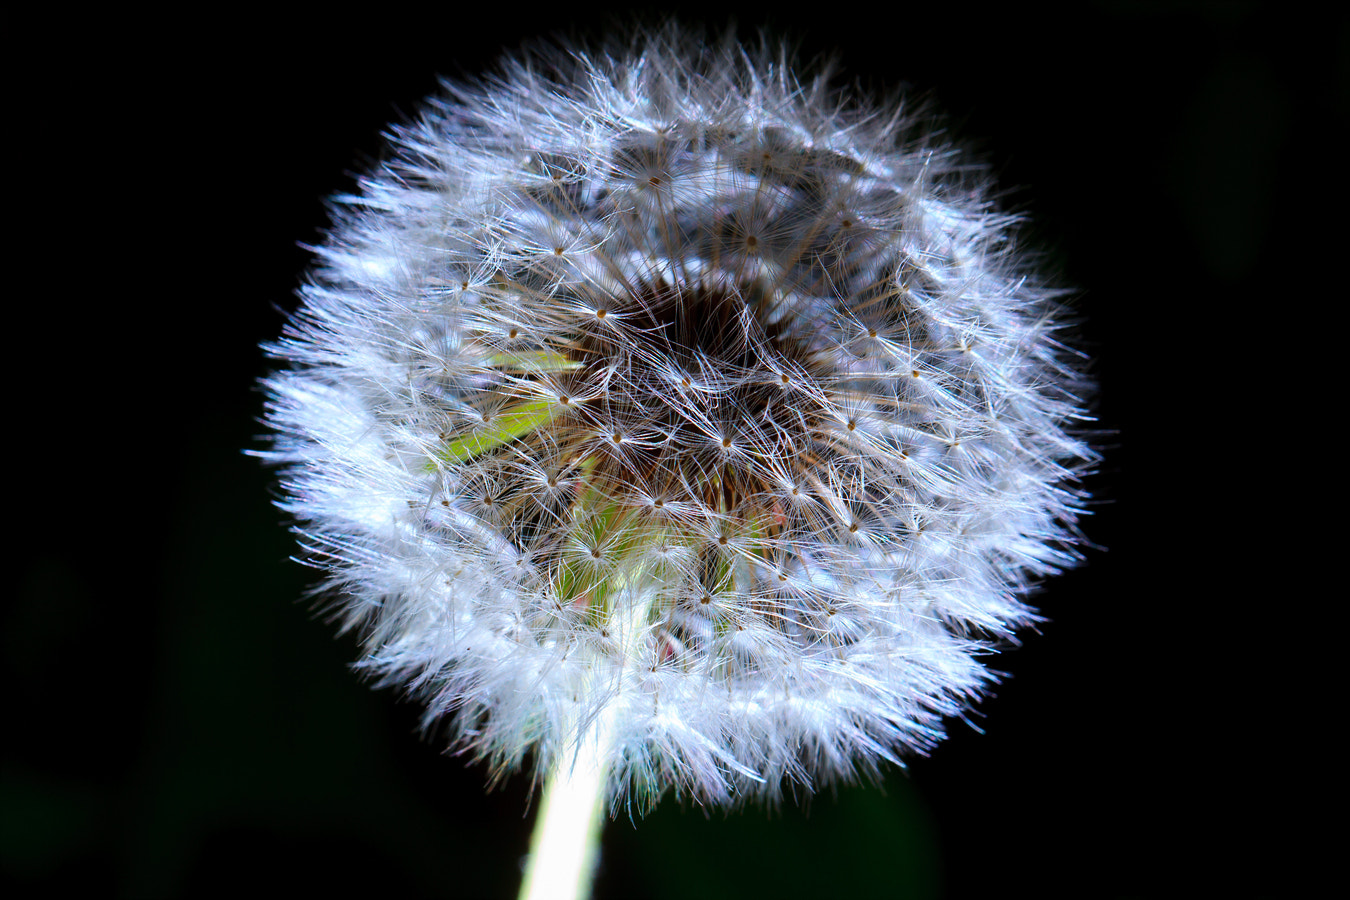 Photograph dandelion by LEE HOE GEON on 500px